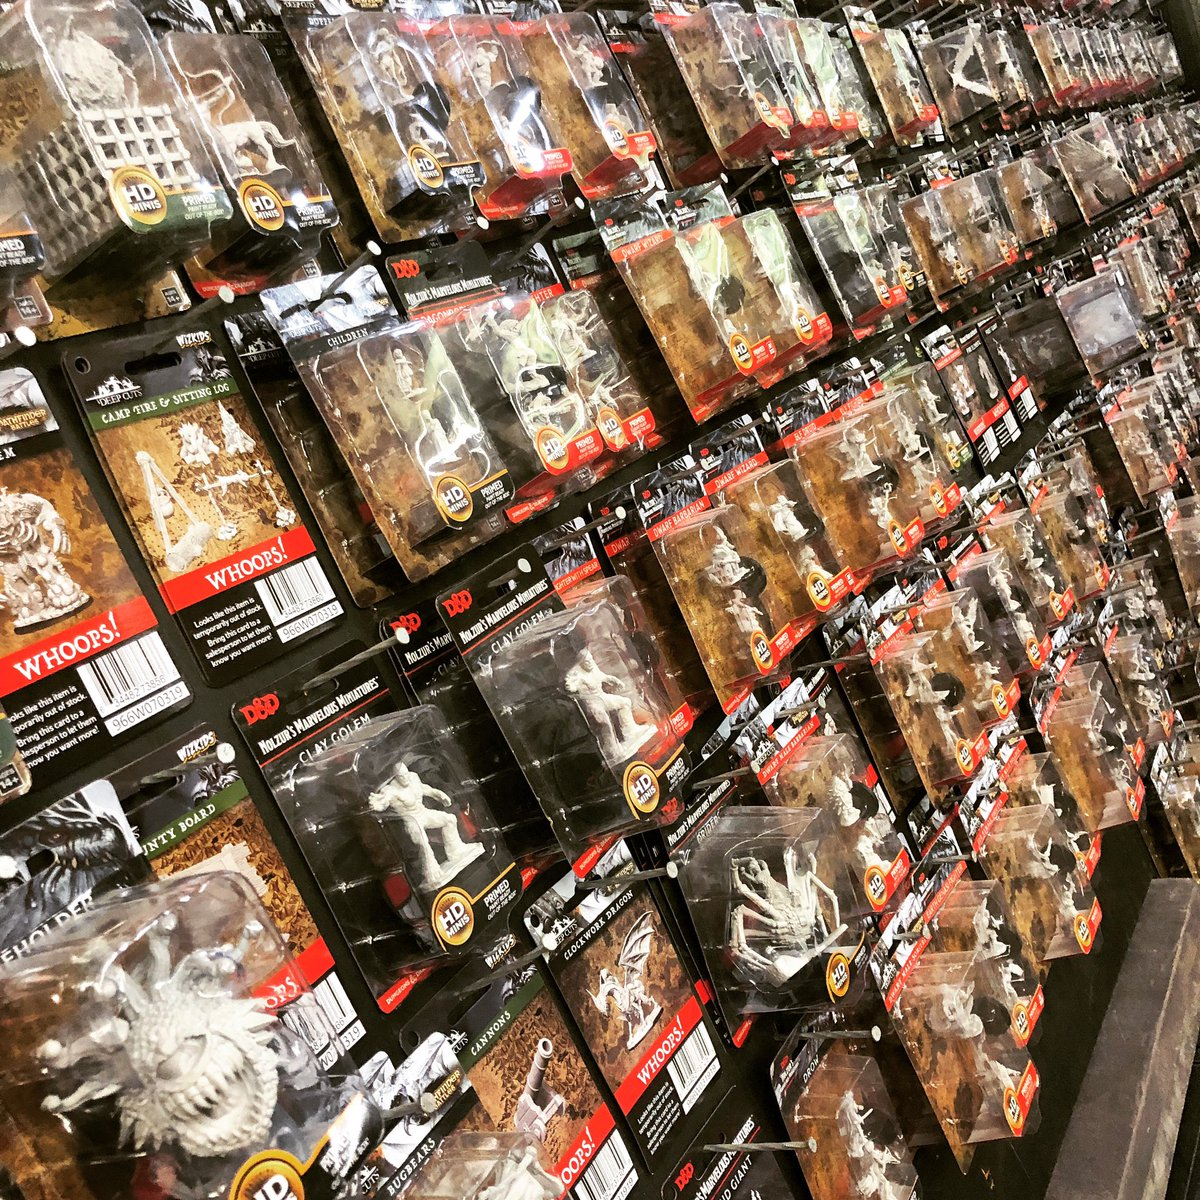 #Minis as far as the eye can see!  . #gamesworkshop #citadelminiatures #wahammer #warhammerfantasy #warhammerageofsigmar #warhammer40000 #warhammer40k #horusheresy #middlehammer #oldhammer #themonstermerchants #forgeworld #wargaming #roleplaying #guelph #dnd #dungeonsanddragons https://t.co/IJhCCfuAlb